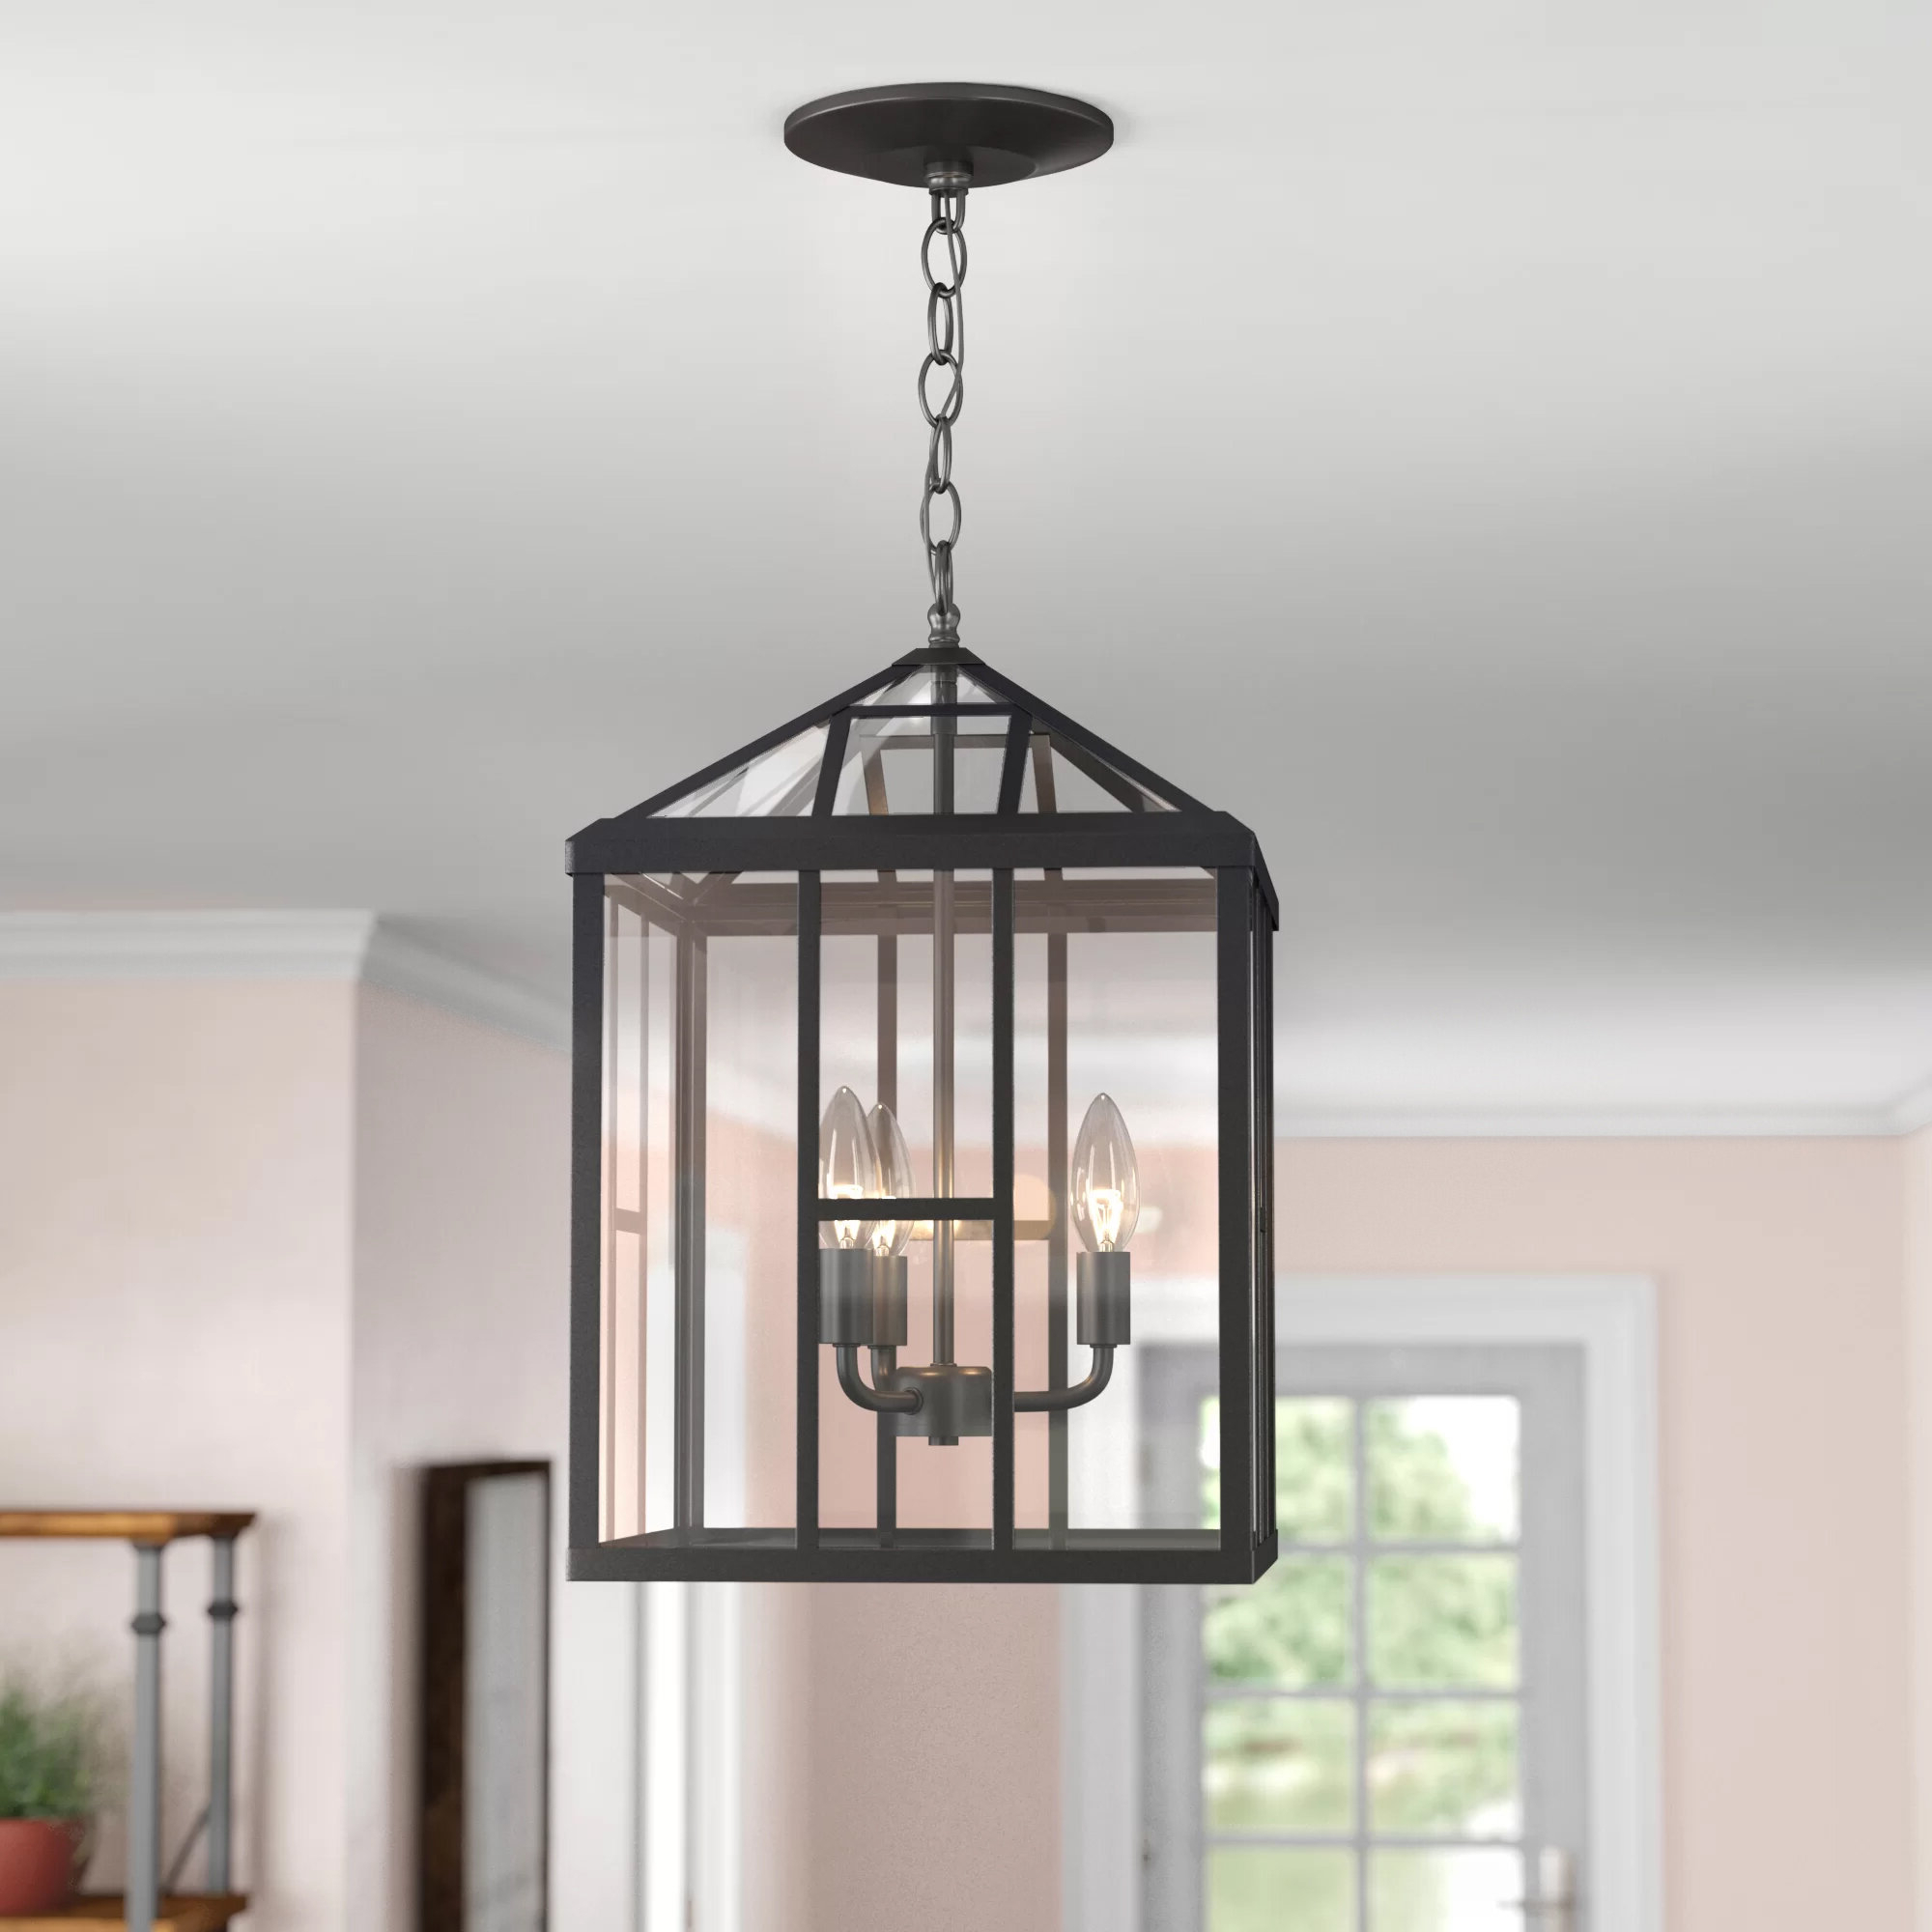 Adelaida 3 Light Lantern Geometric Pendant Regarding 2019 Sherri Ann 3 Light Lantern Square / Rectangle Pendants (View 8 of 25)